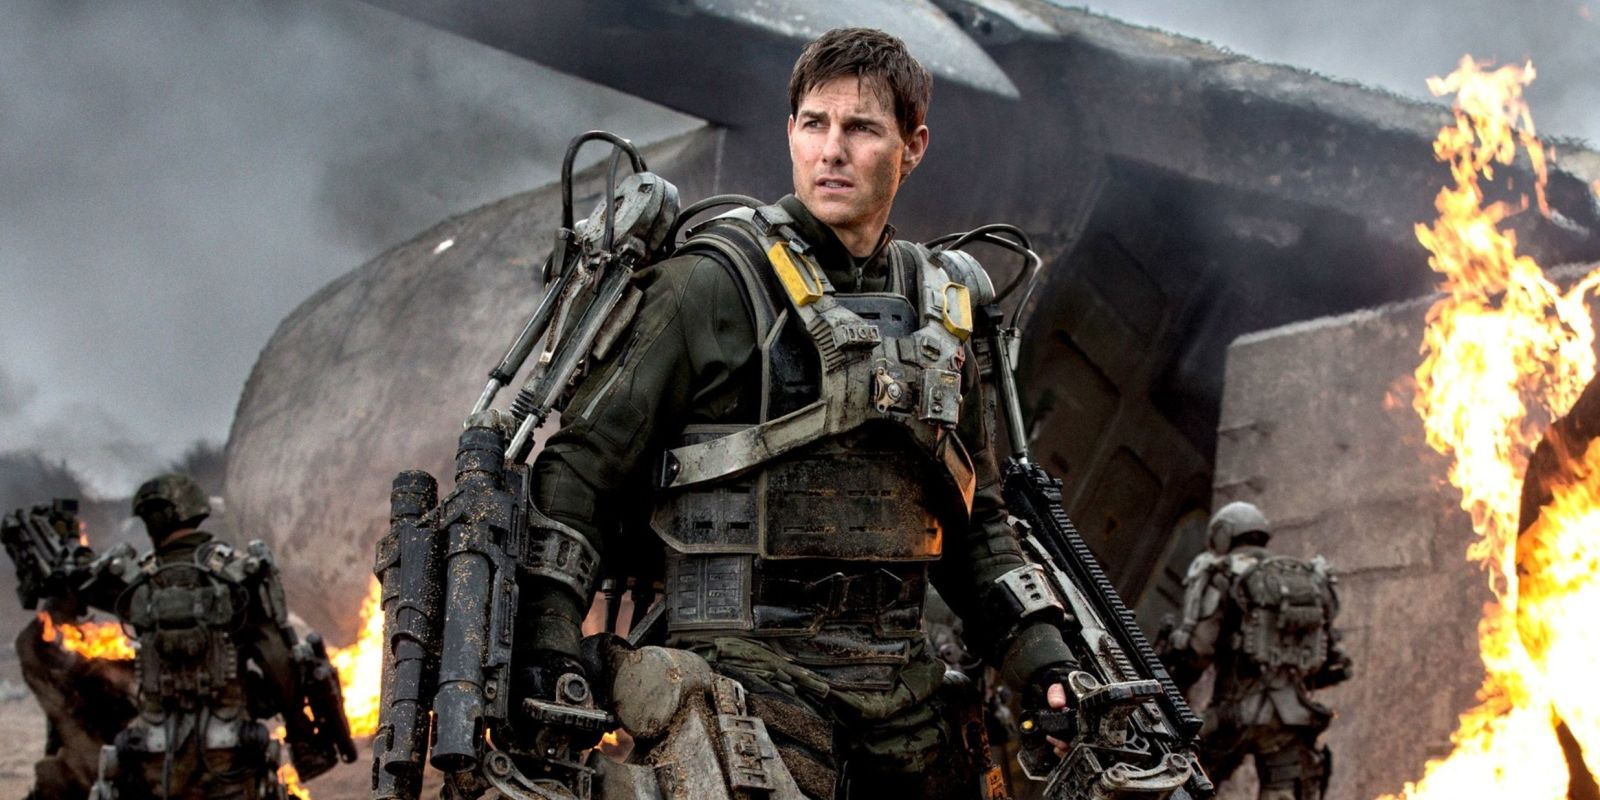 Edge of Tomorrow 2 plot details teased by Doug Liman